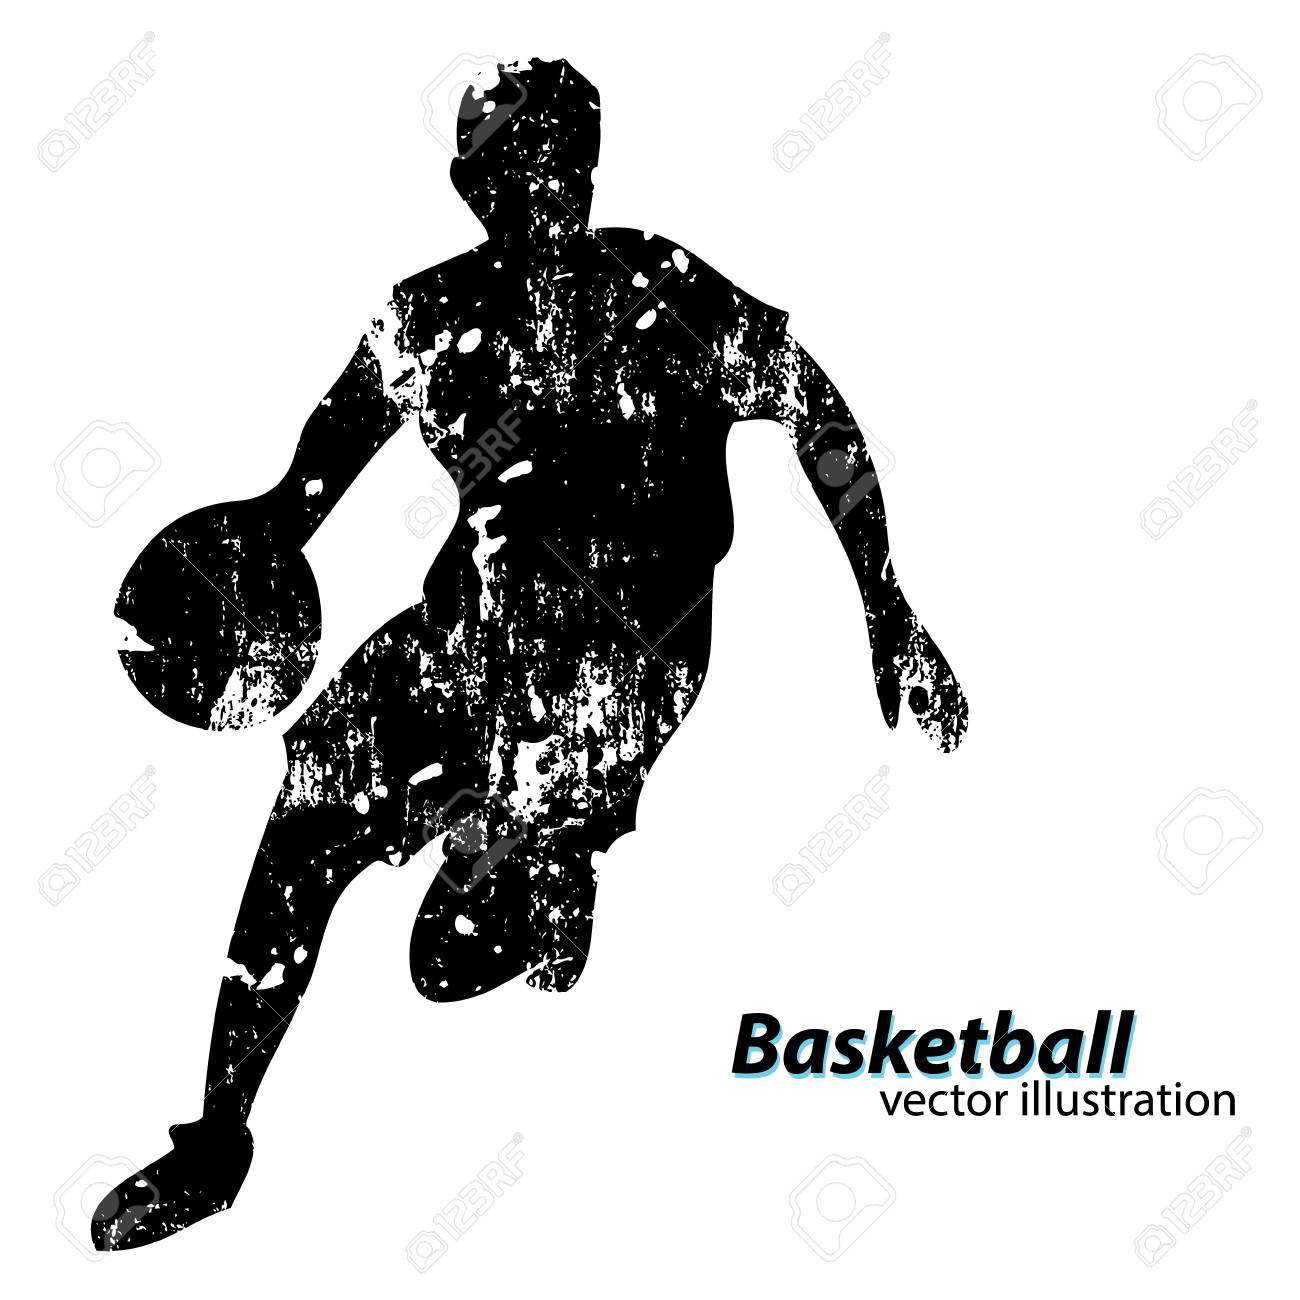 Silhouette of a basketball player. Background and text on a separate layer, color can be changed in one click - 67503179